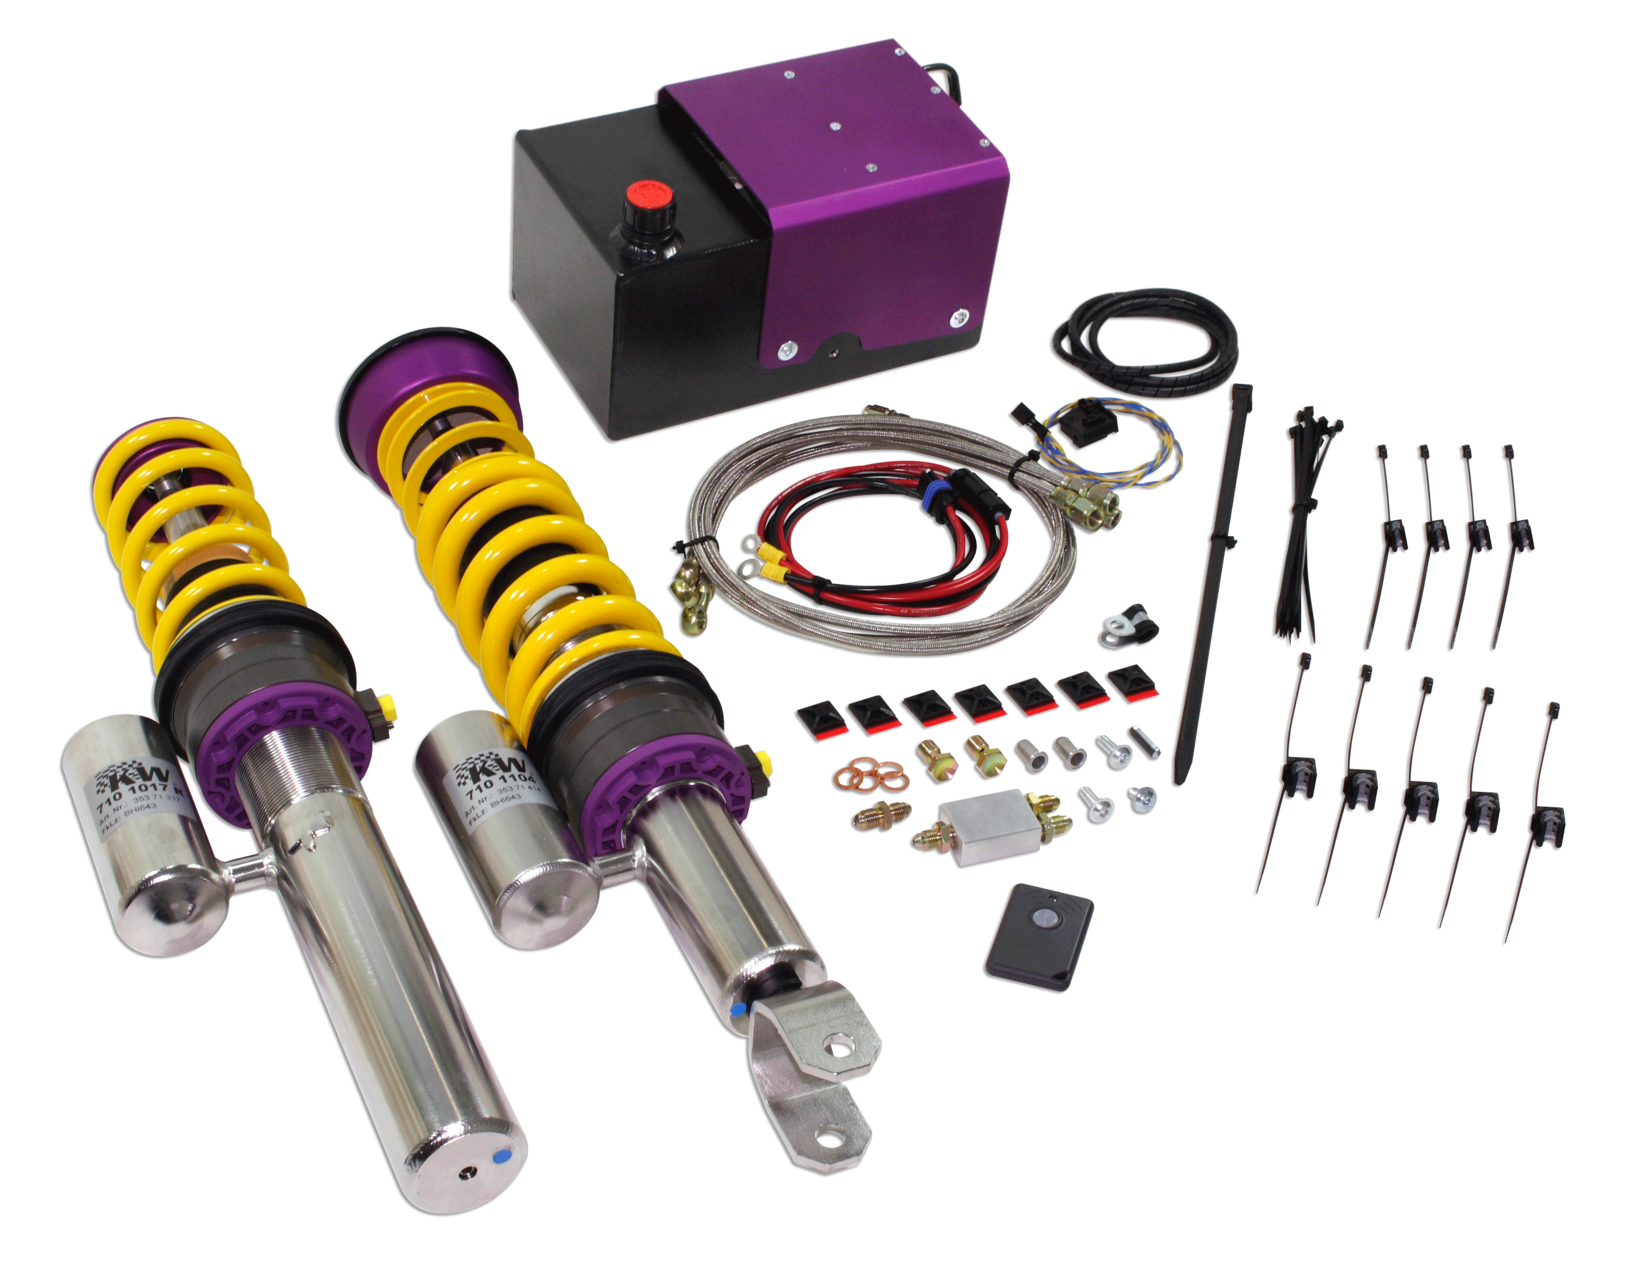 Porsche Hydraulic Lift Suspension Hls System